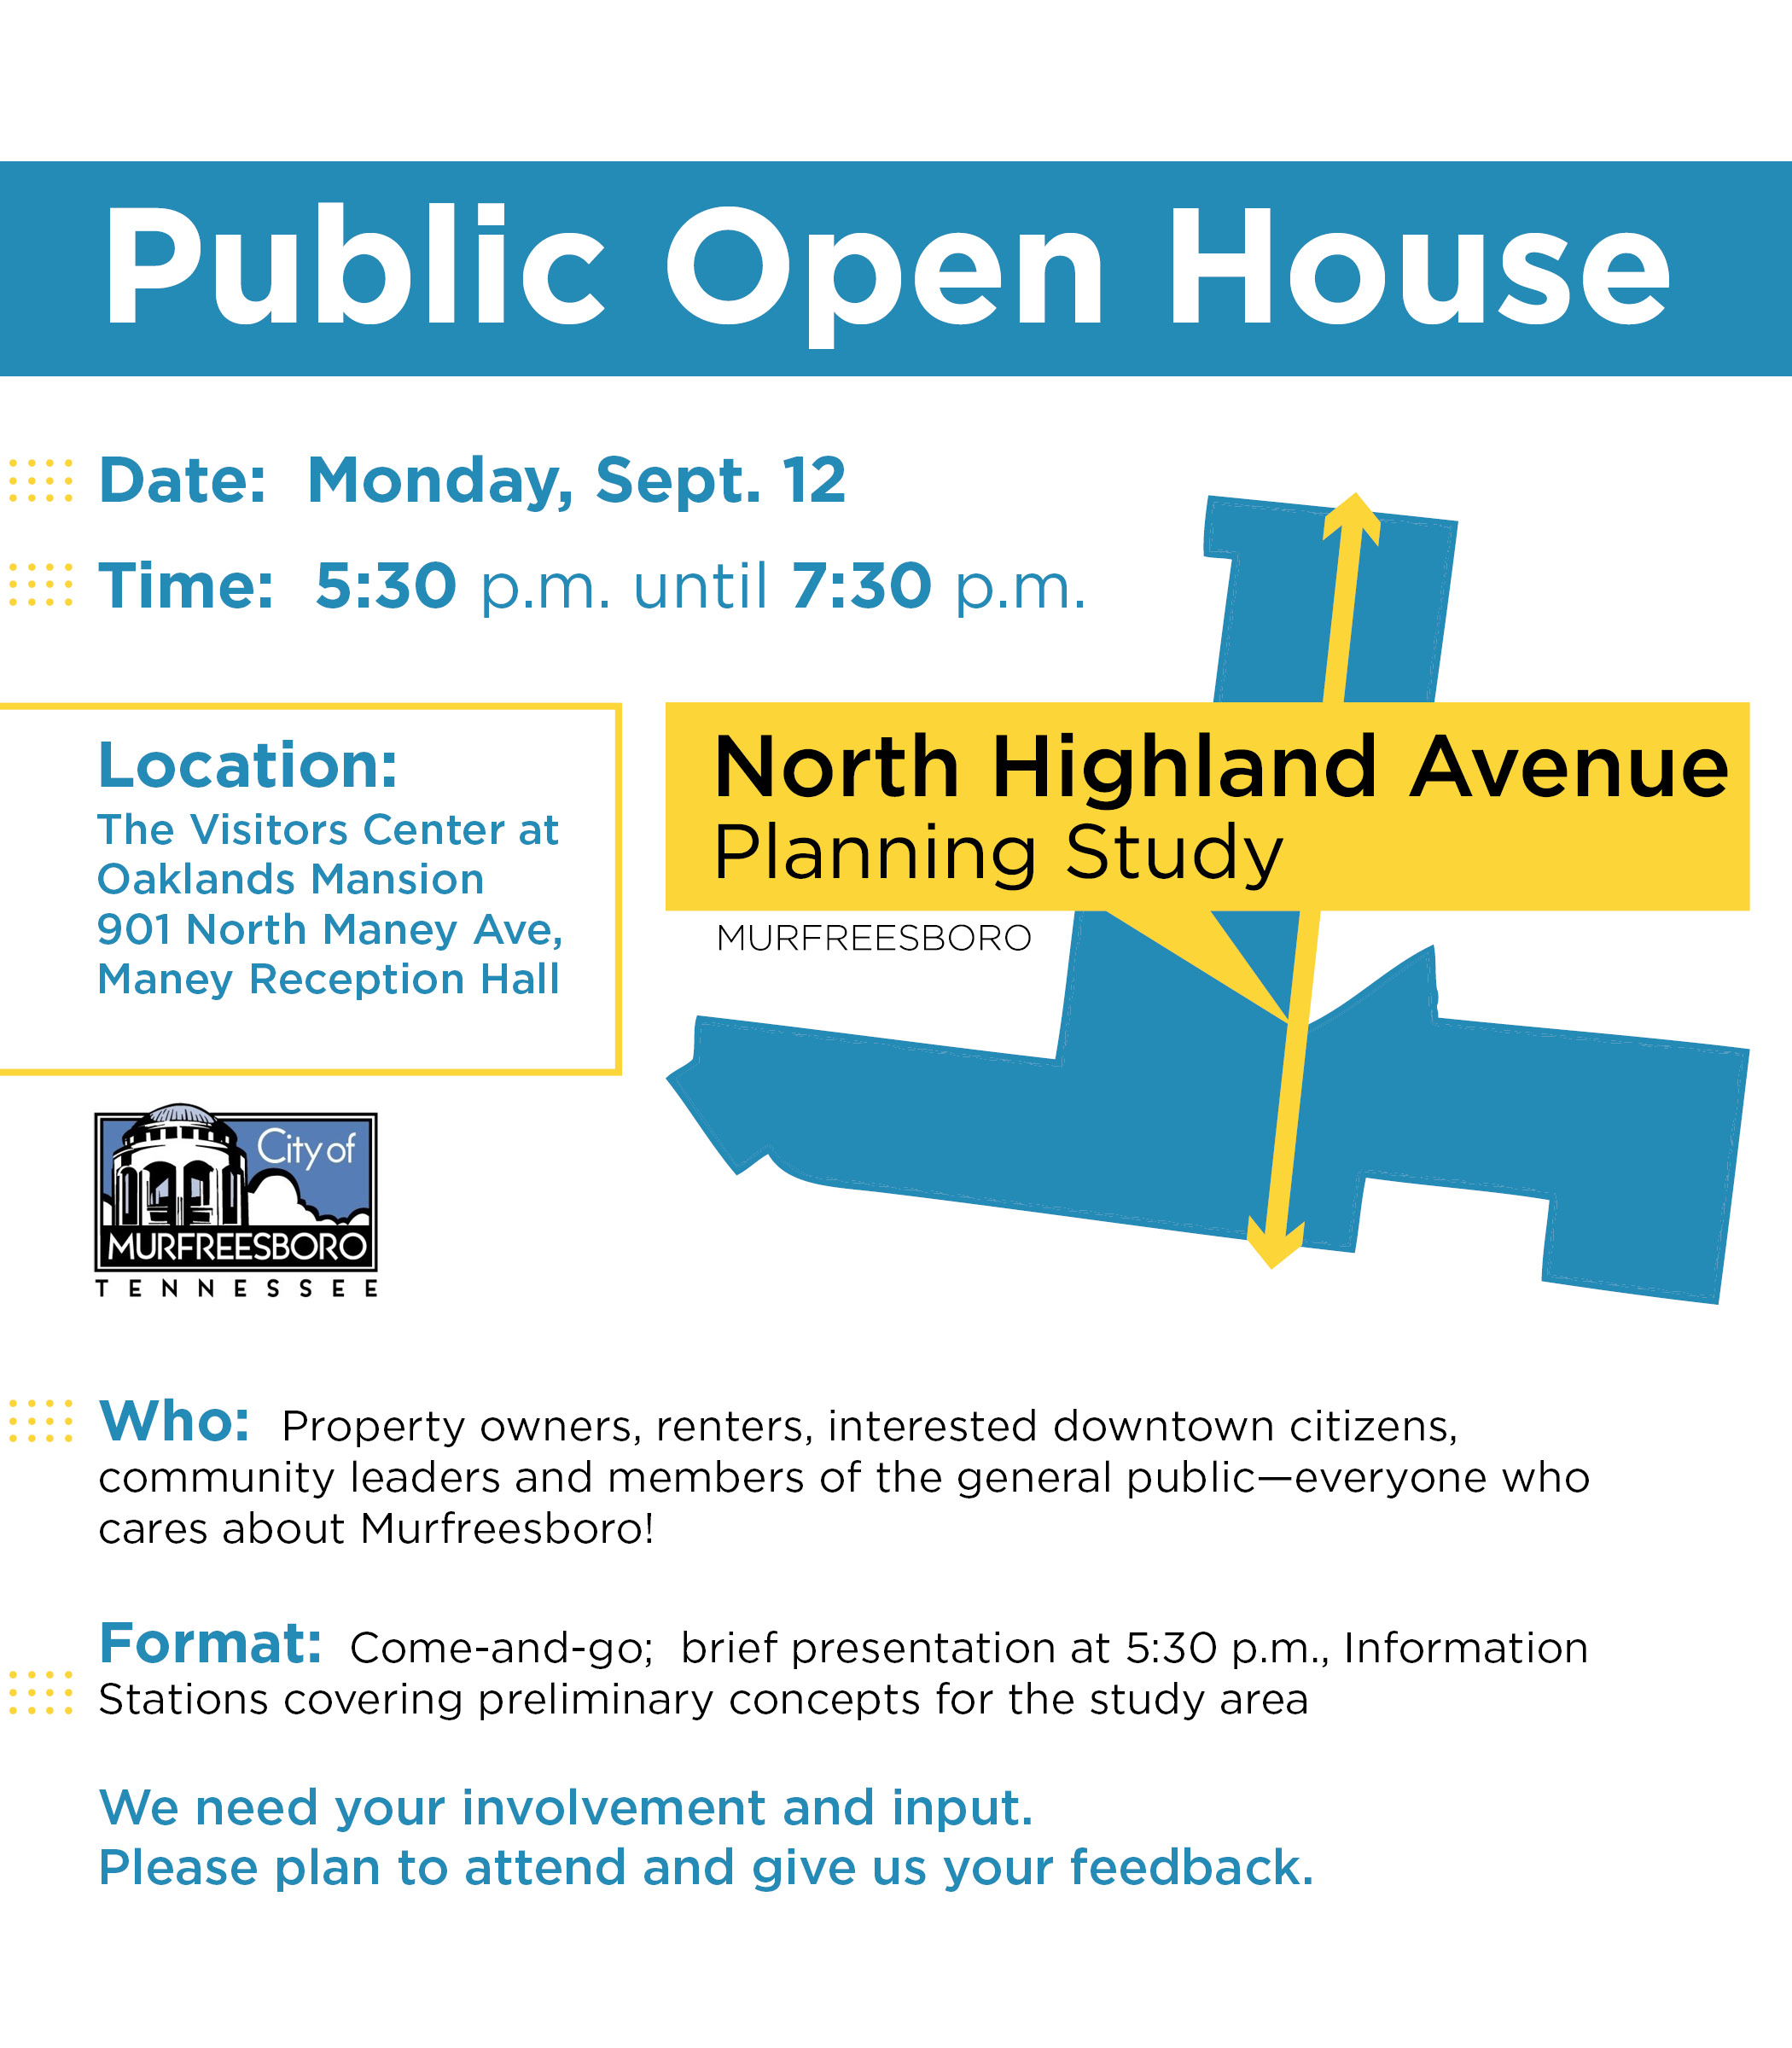 Public Invited to City's North Highland Avenue Planning Study Public Open House Sept. 12